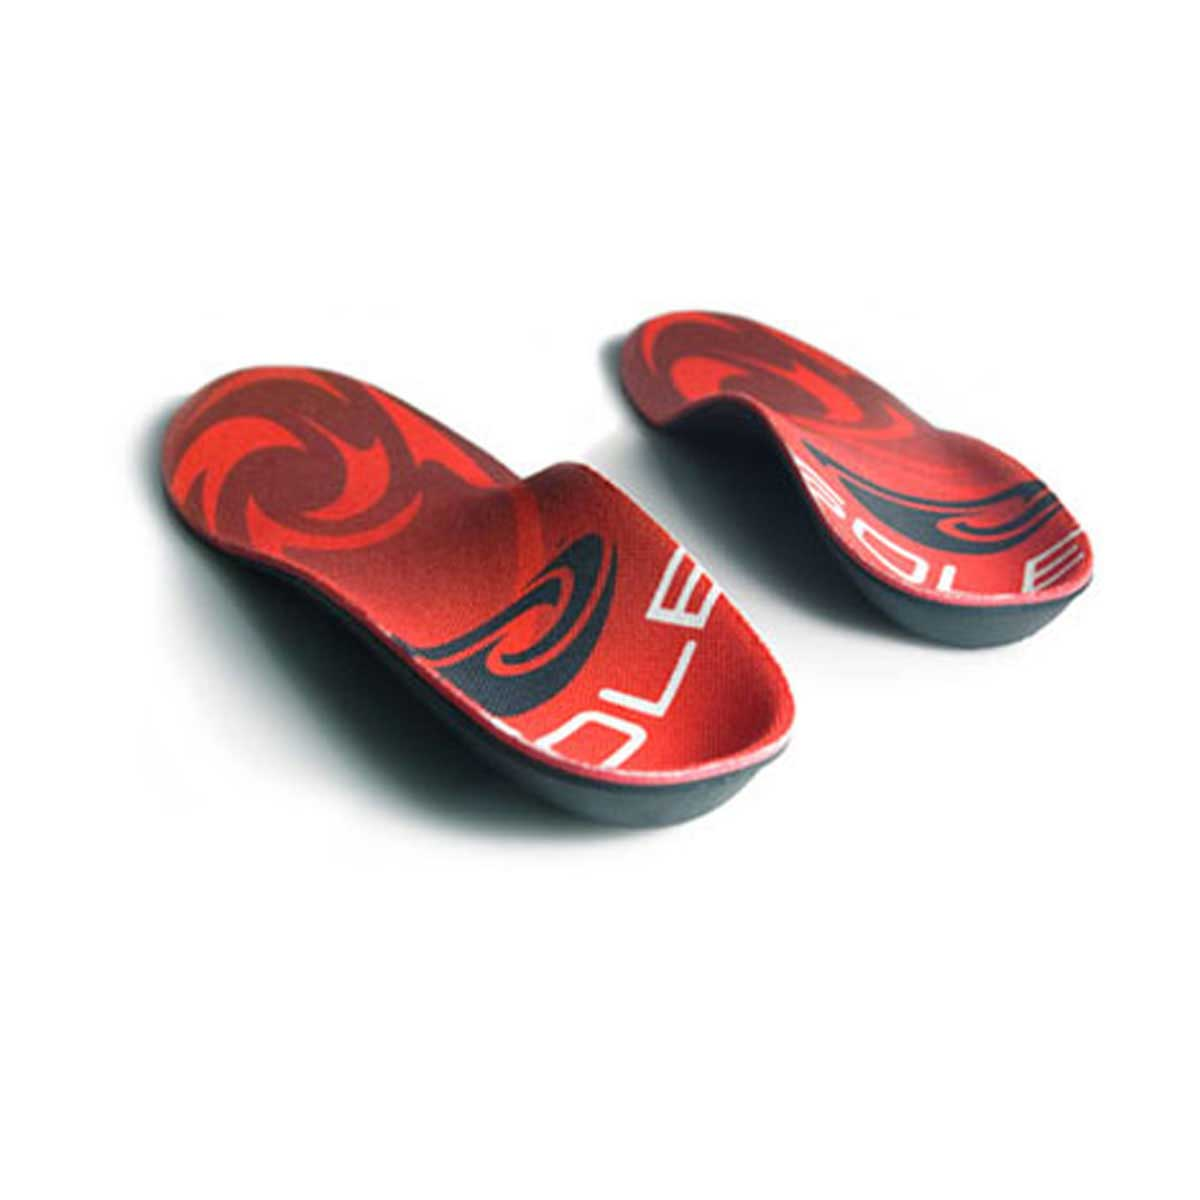 SOLE Softtec Response Footbed Inserts s M 4 W 6